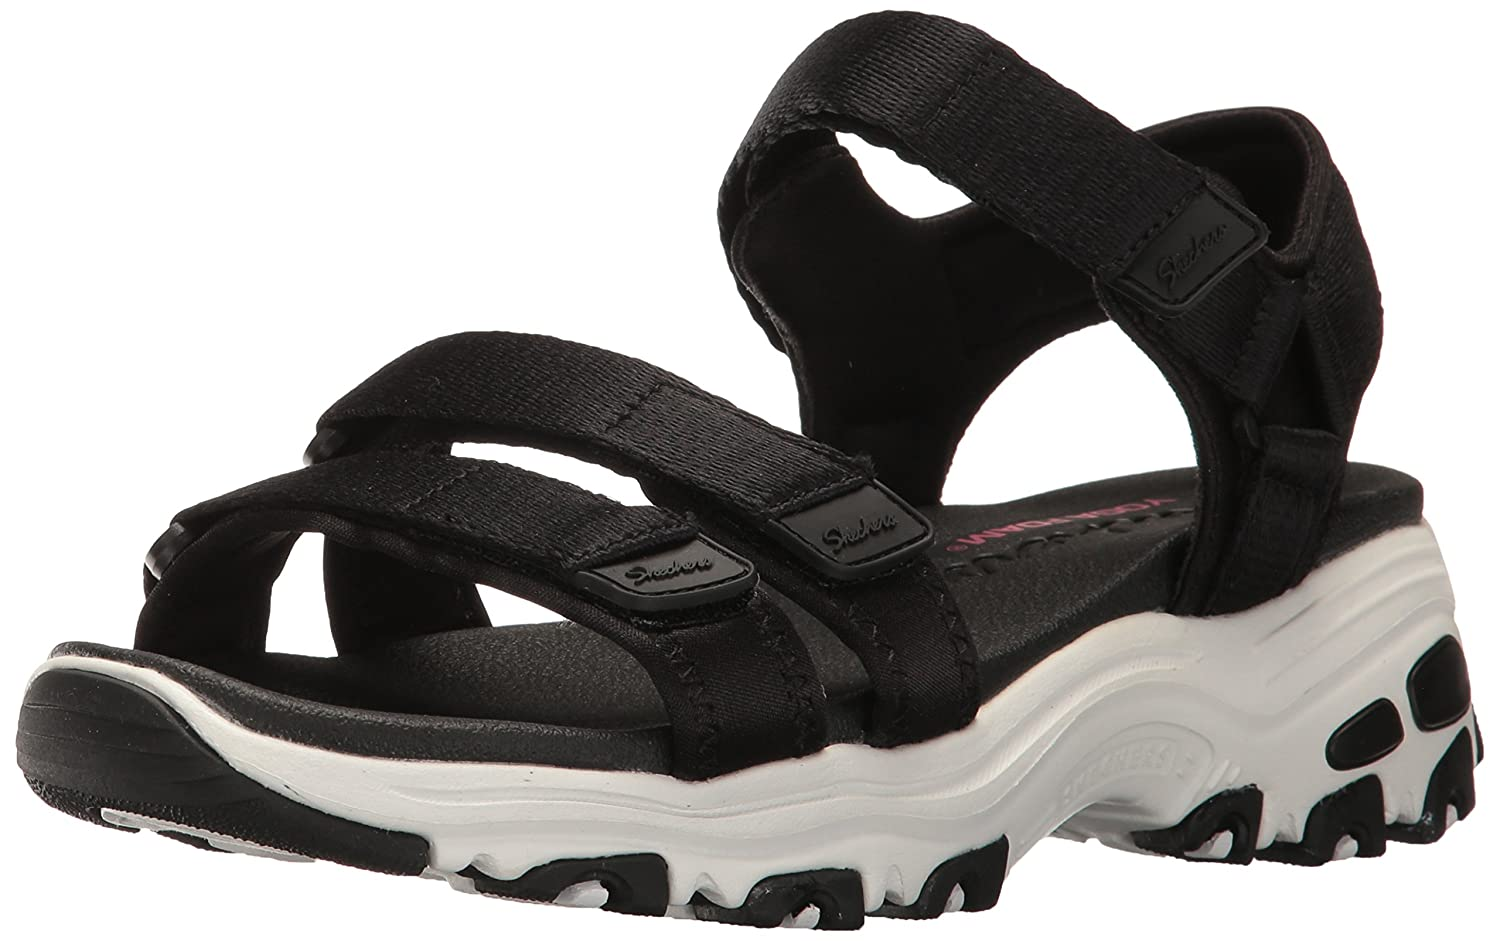 Skechers Cali Women's D'Lites-Fresh Catch Wedge Sandal B01N4BHDZJ 5 M US|Black